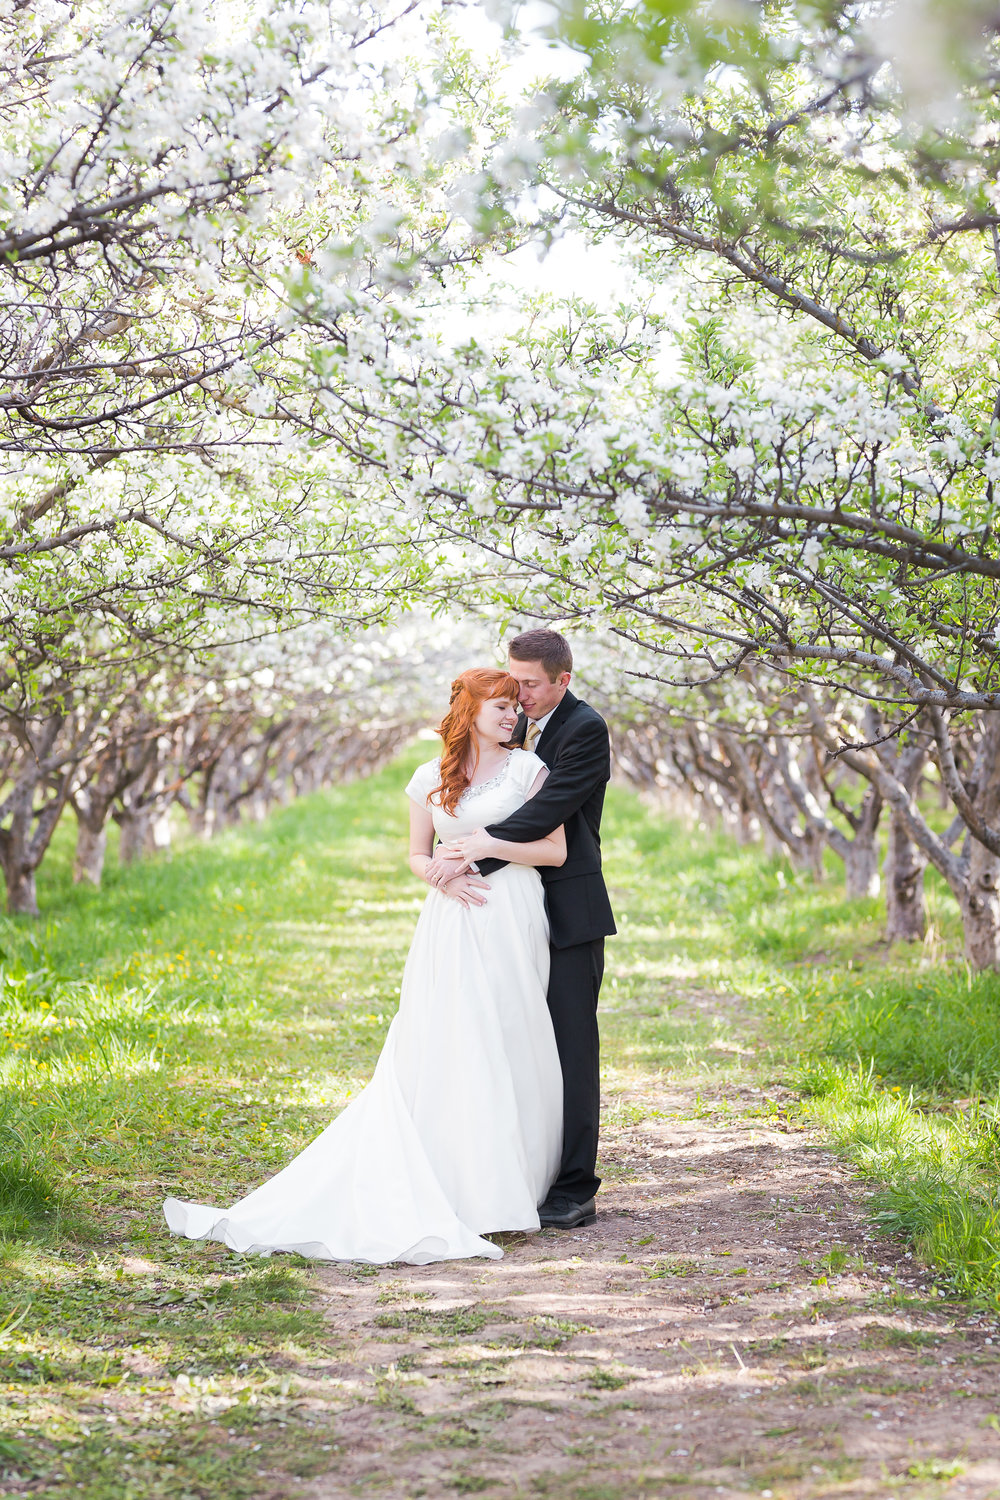 Bride and Groom Snuggle under Blossoms